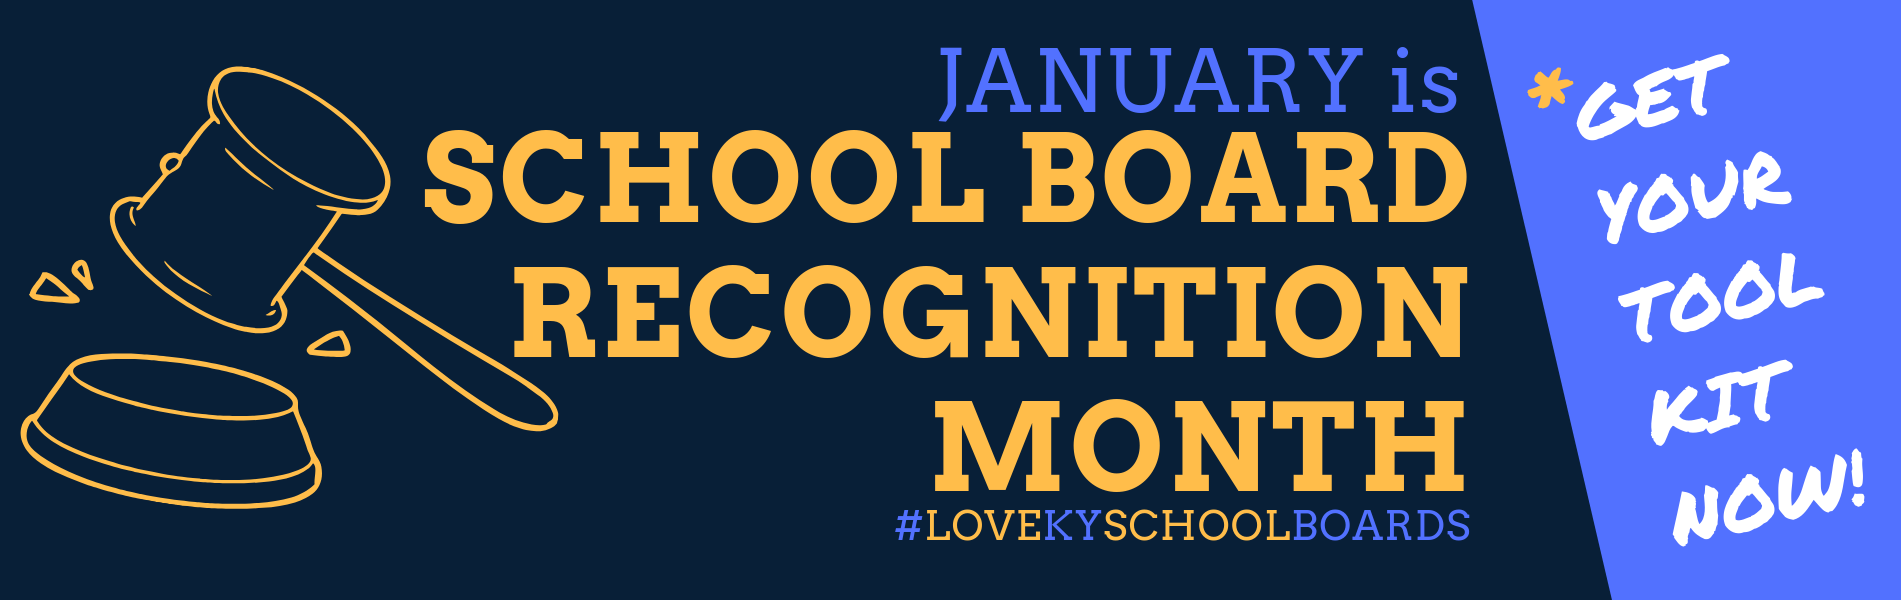 School Board Recognition Month tool kit